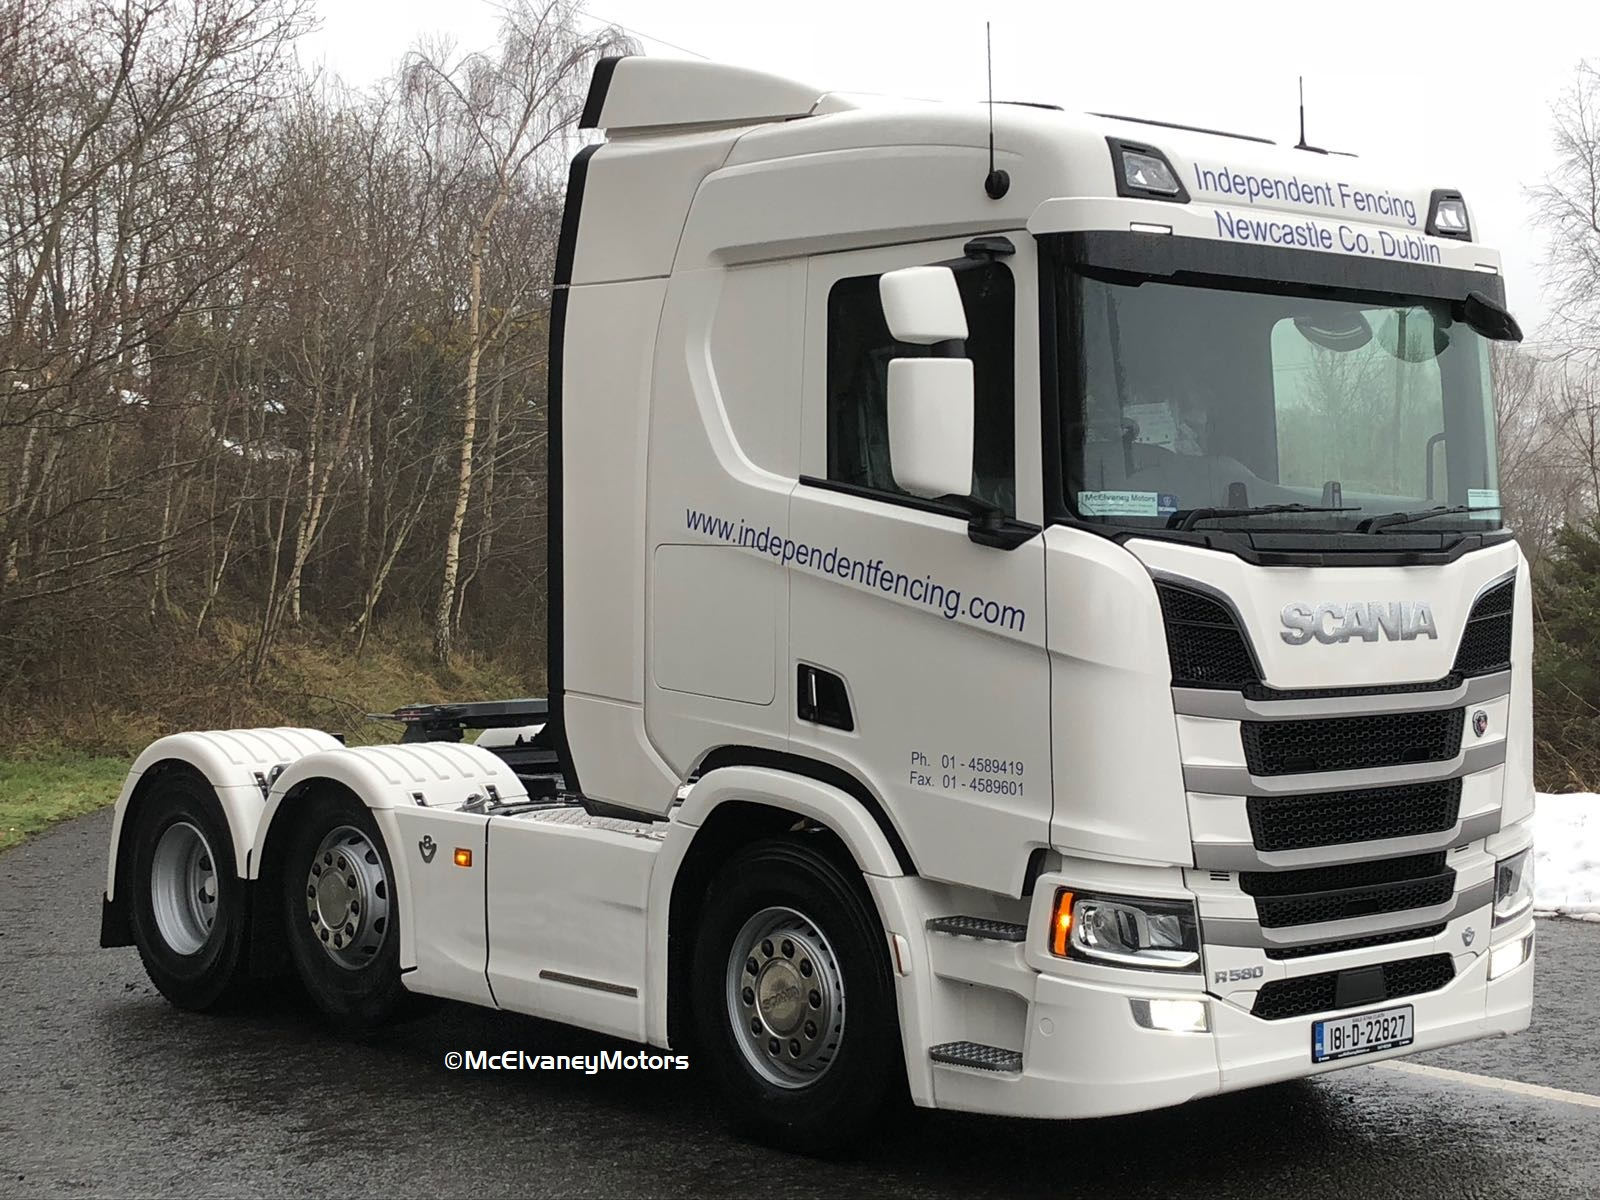 New Gen Scania for Independent Fencing